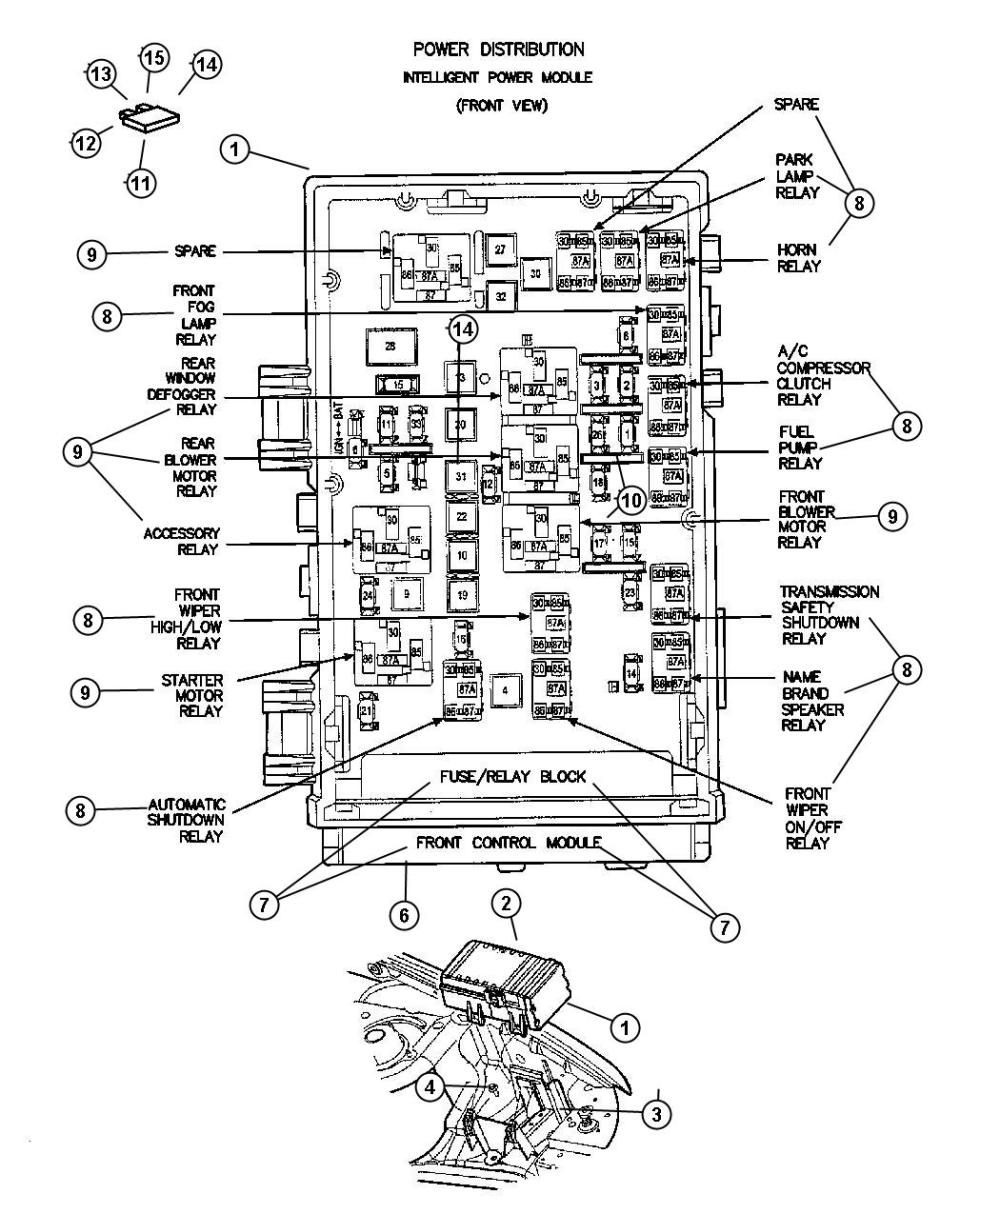 medium resolution of chrysler town and country fuse box diagram wiring 2012 chrysler town and country fuse box diagram